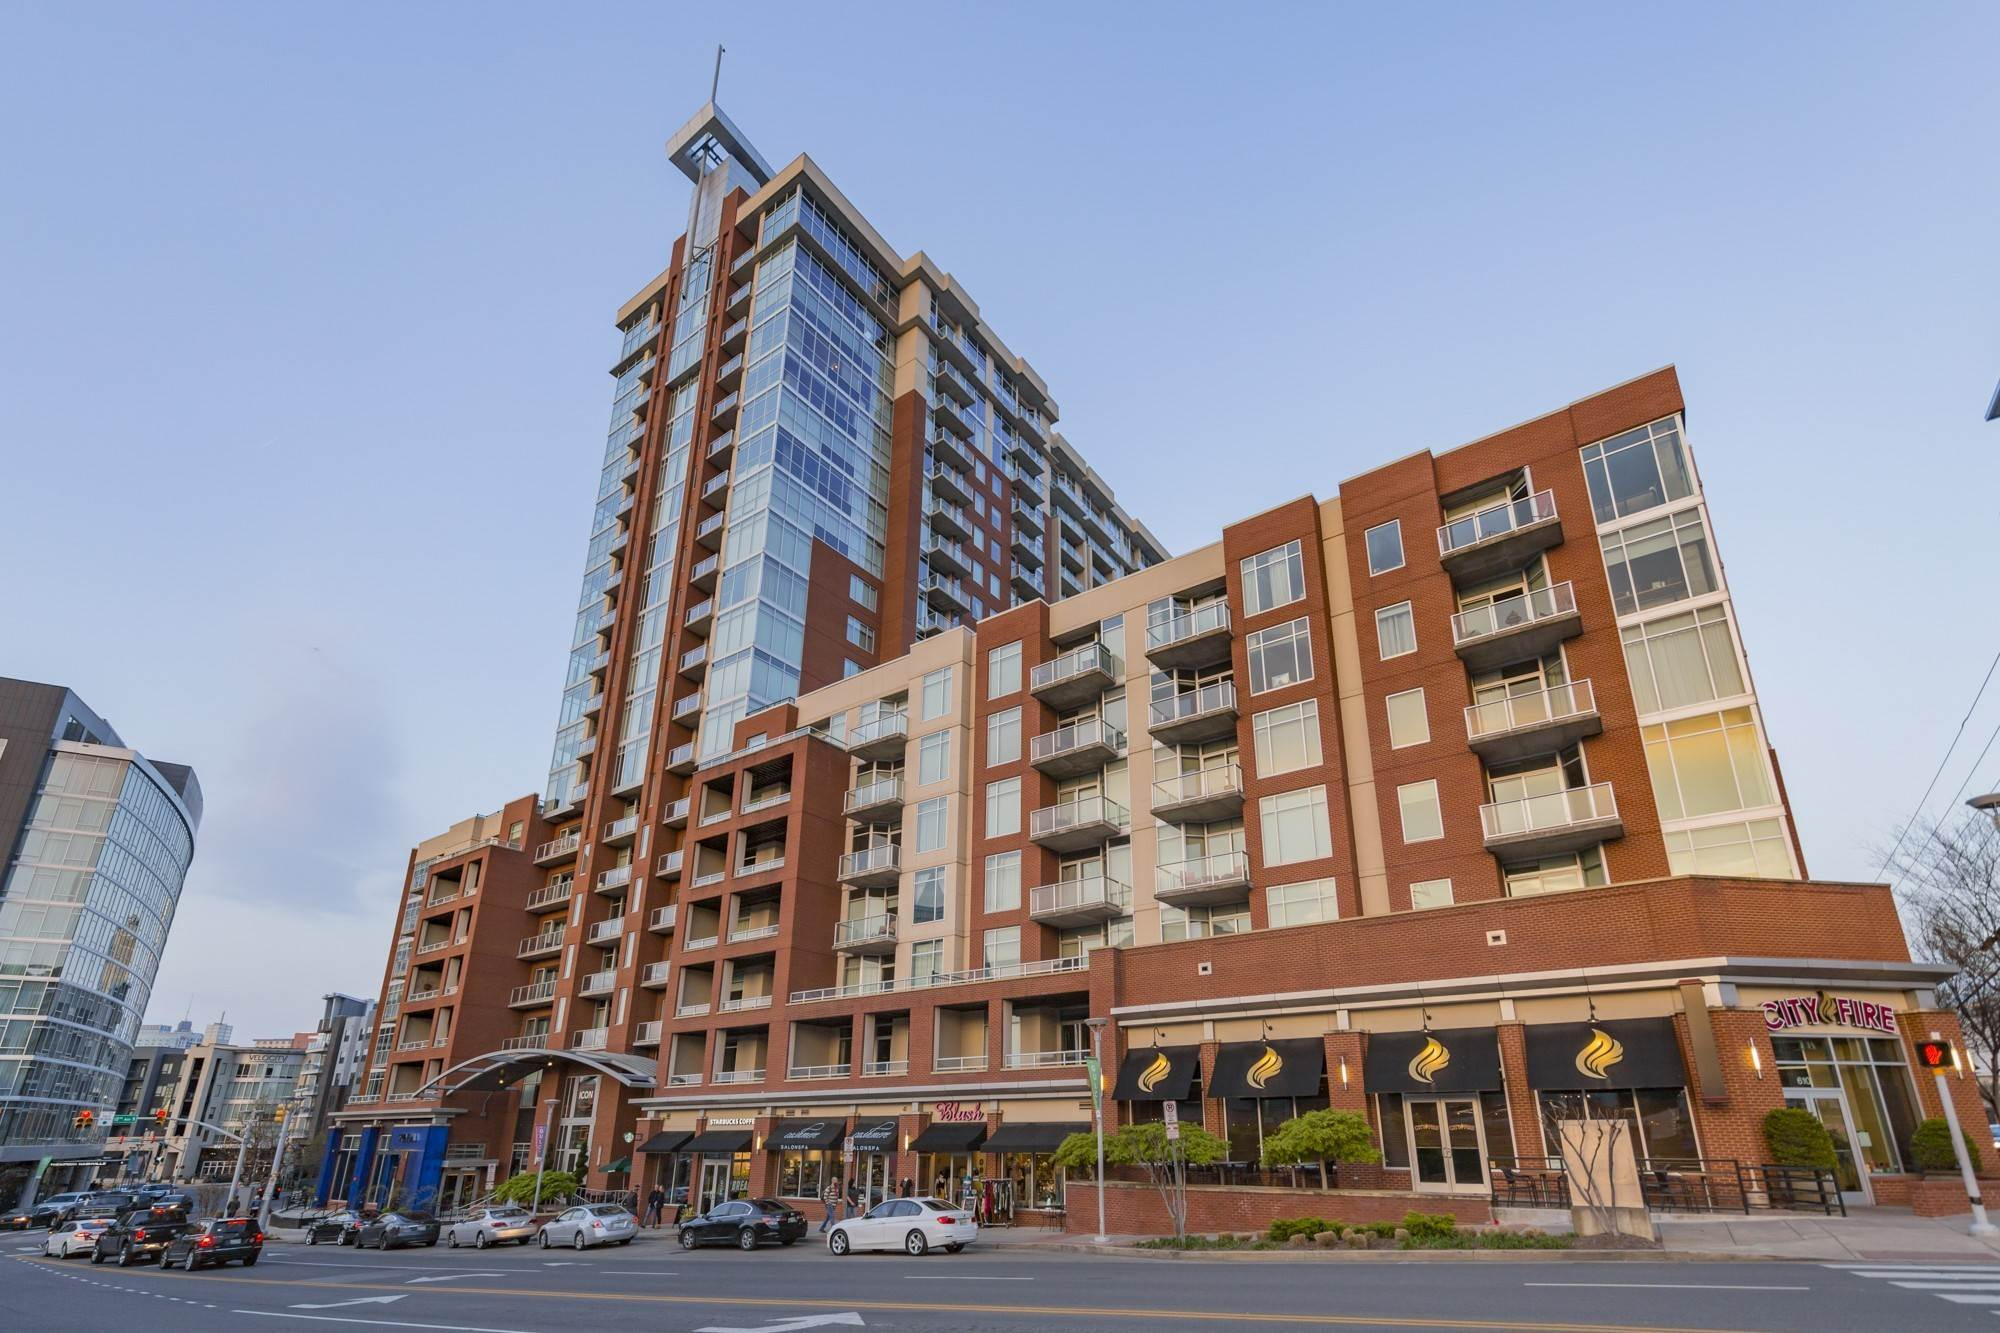 7. High Rise for Sale at 600 12th Ave, S Nashville, Tennessee 37203 United States